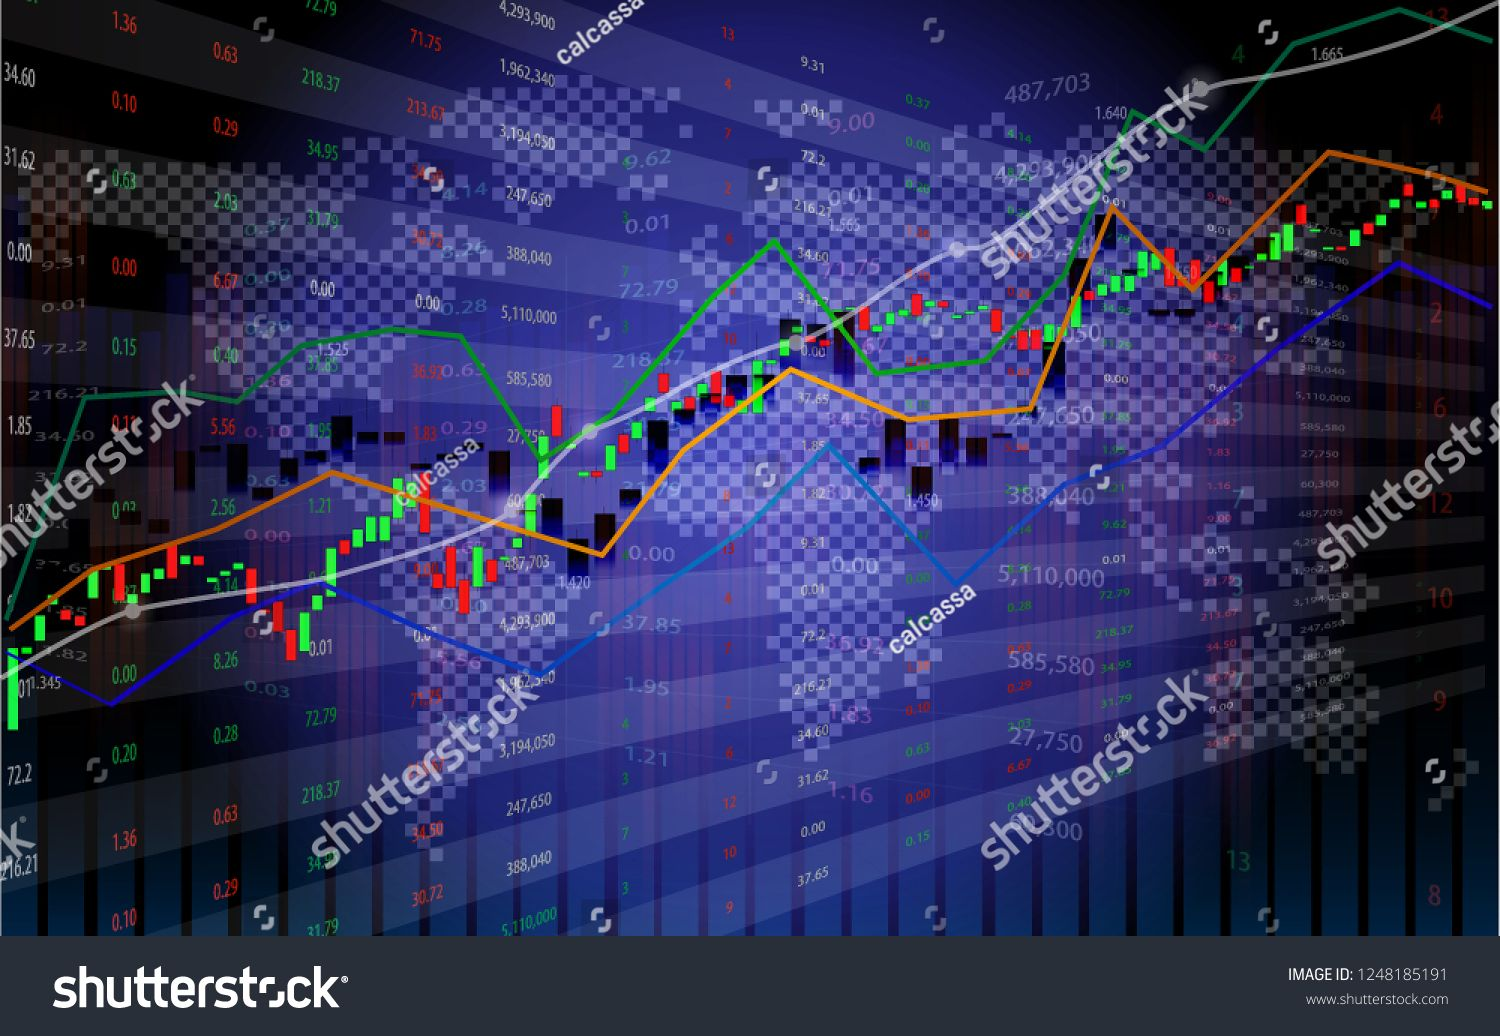 Stock Market Or Forex Trading Chart With Indicator On World Map Background For Financial Concepttrading Chart Forex Trading Charts Stock Market Map Background